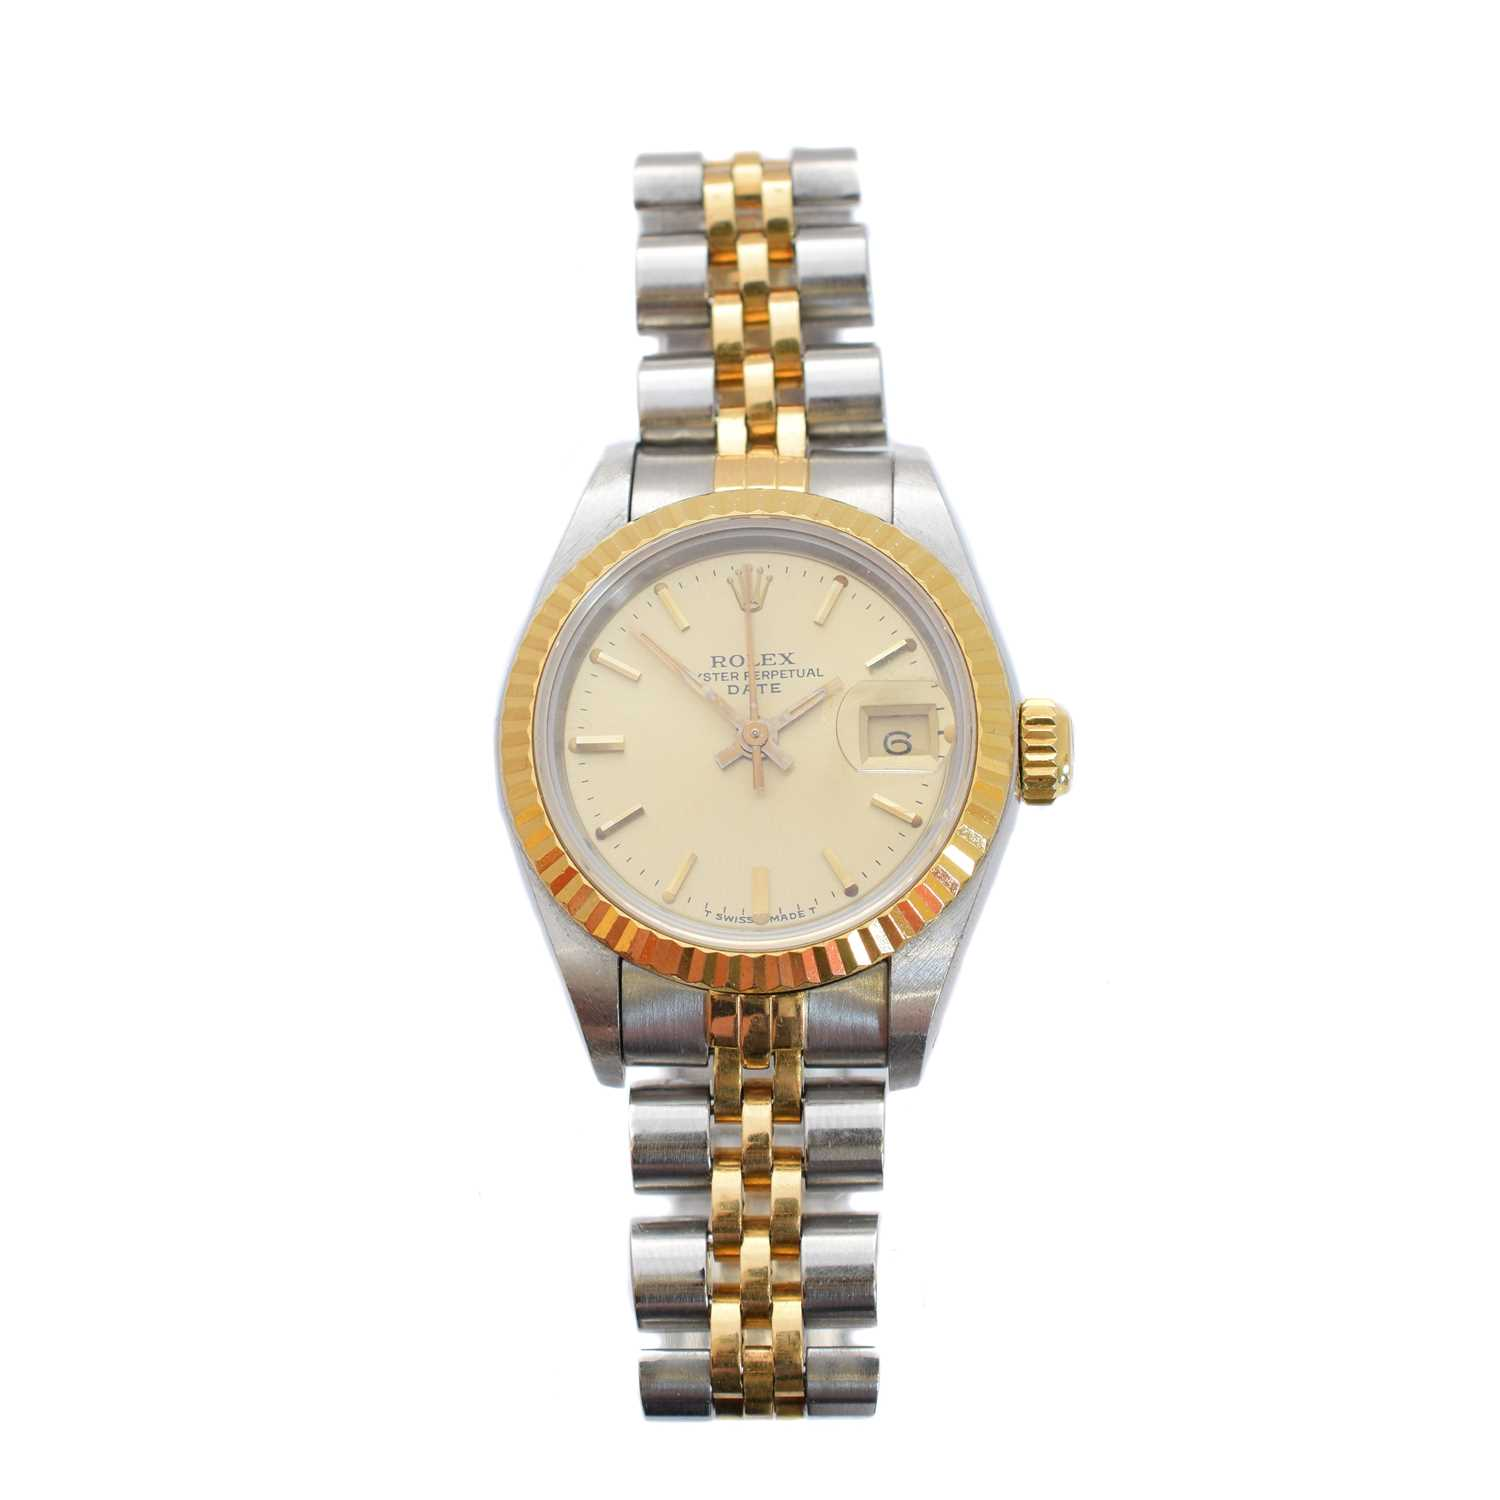 Lot 261-A ladies steel and gold Rolex Oyster Perpetual Datejust wristwatch